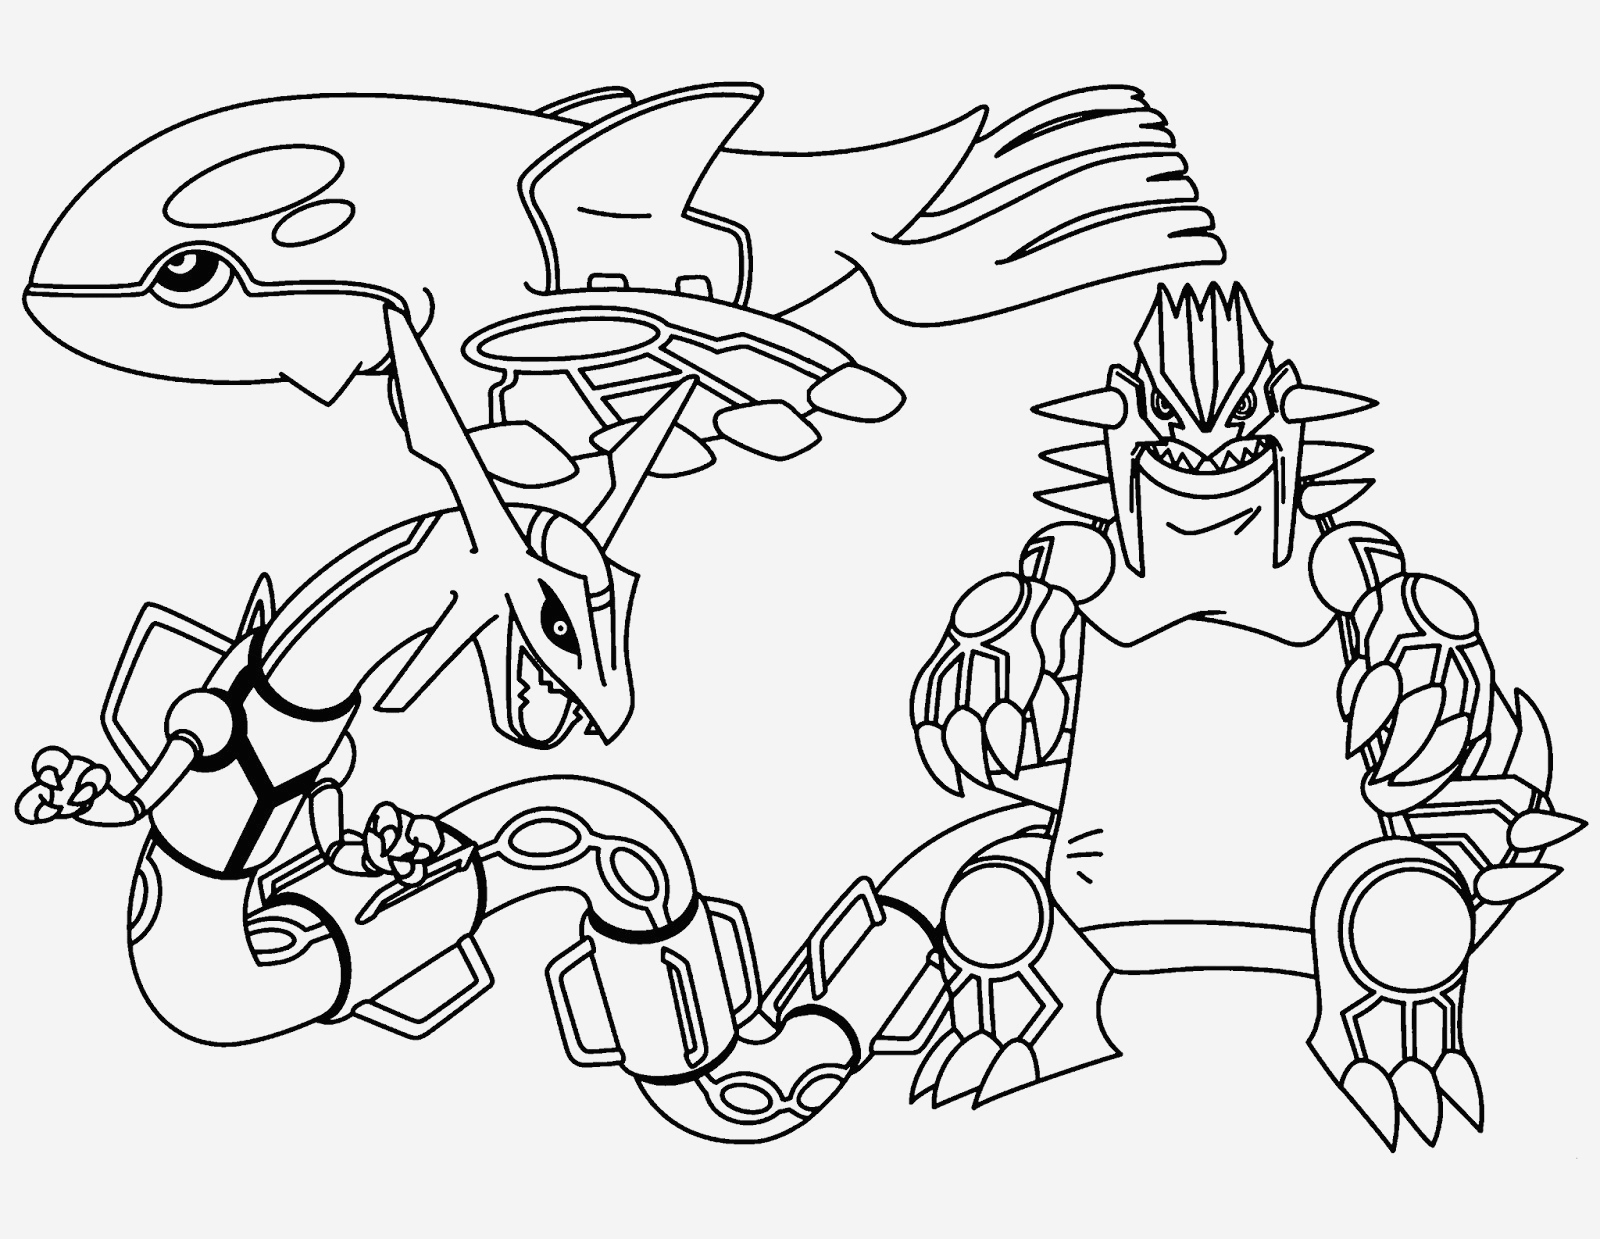 Coloriage De Pokemon Evoli Archives - Coloriages Gratuits destiné Coloriage De Pokémon Gratuit